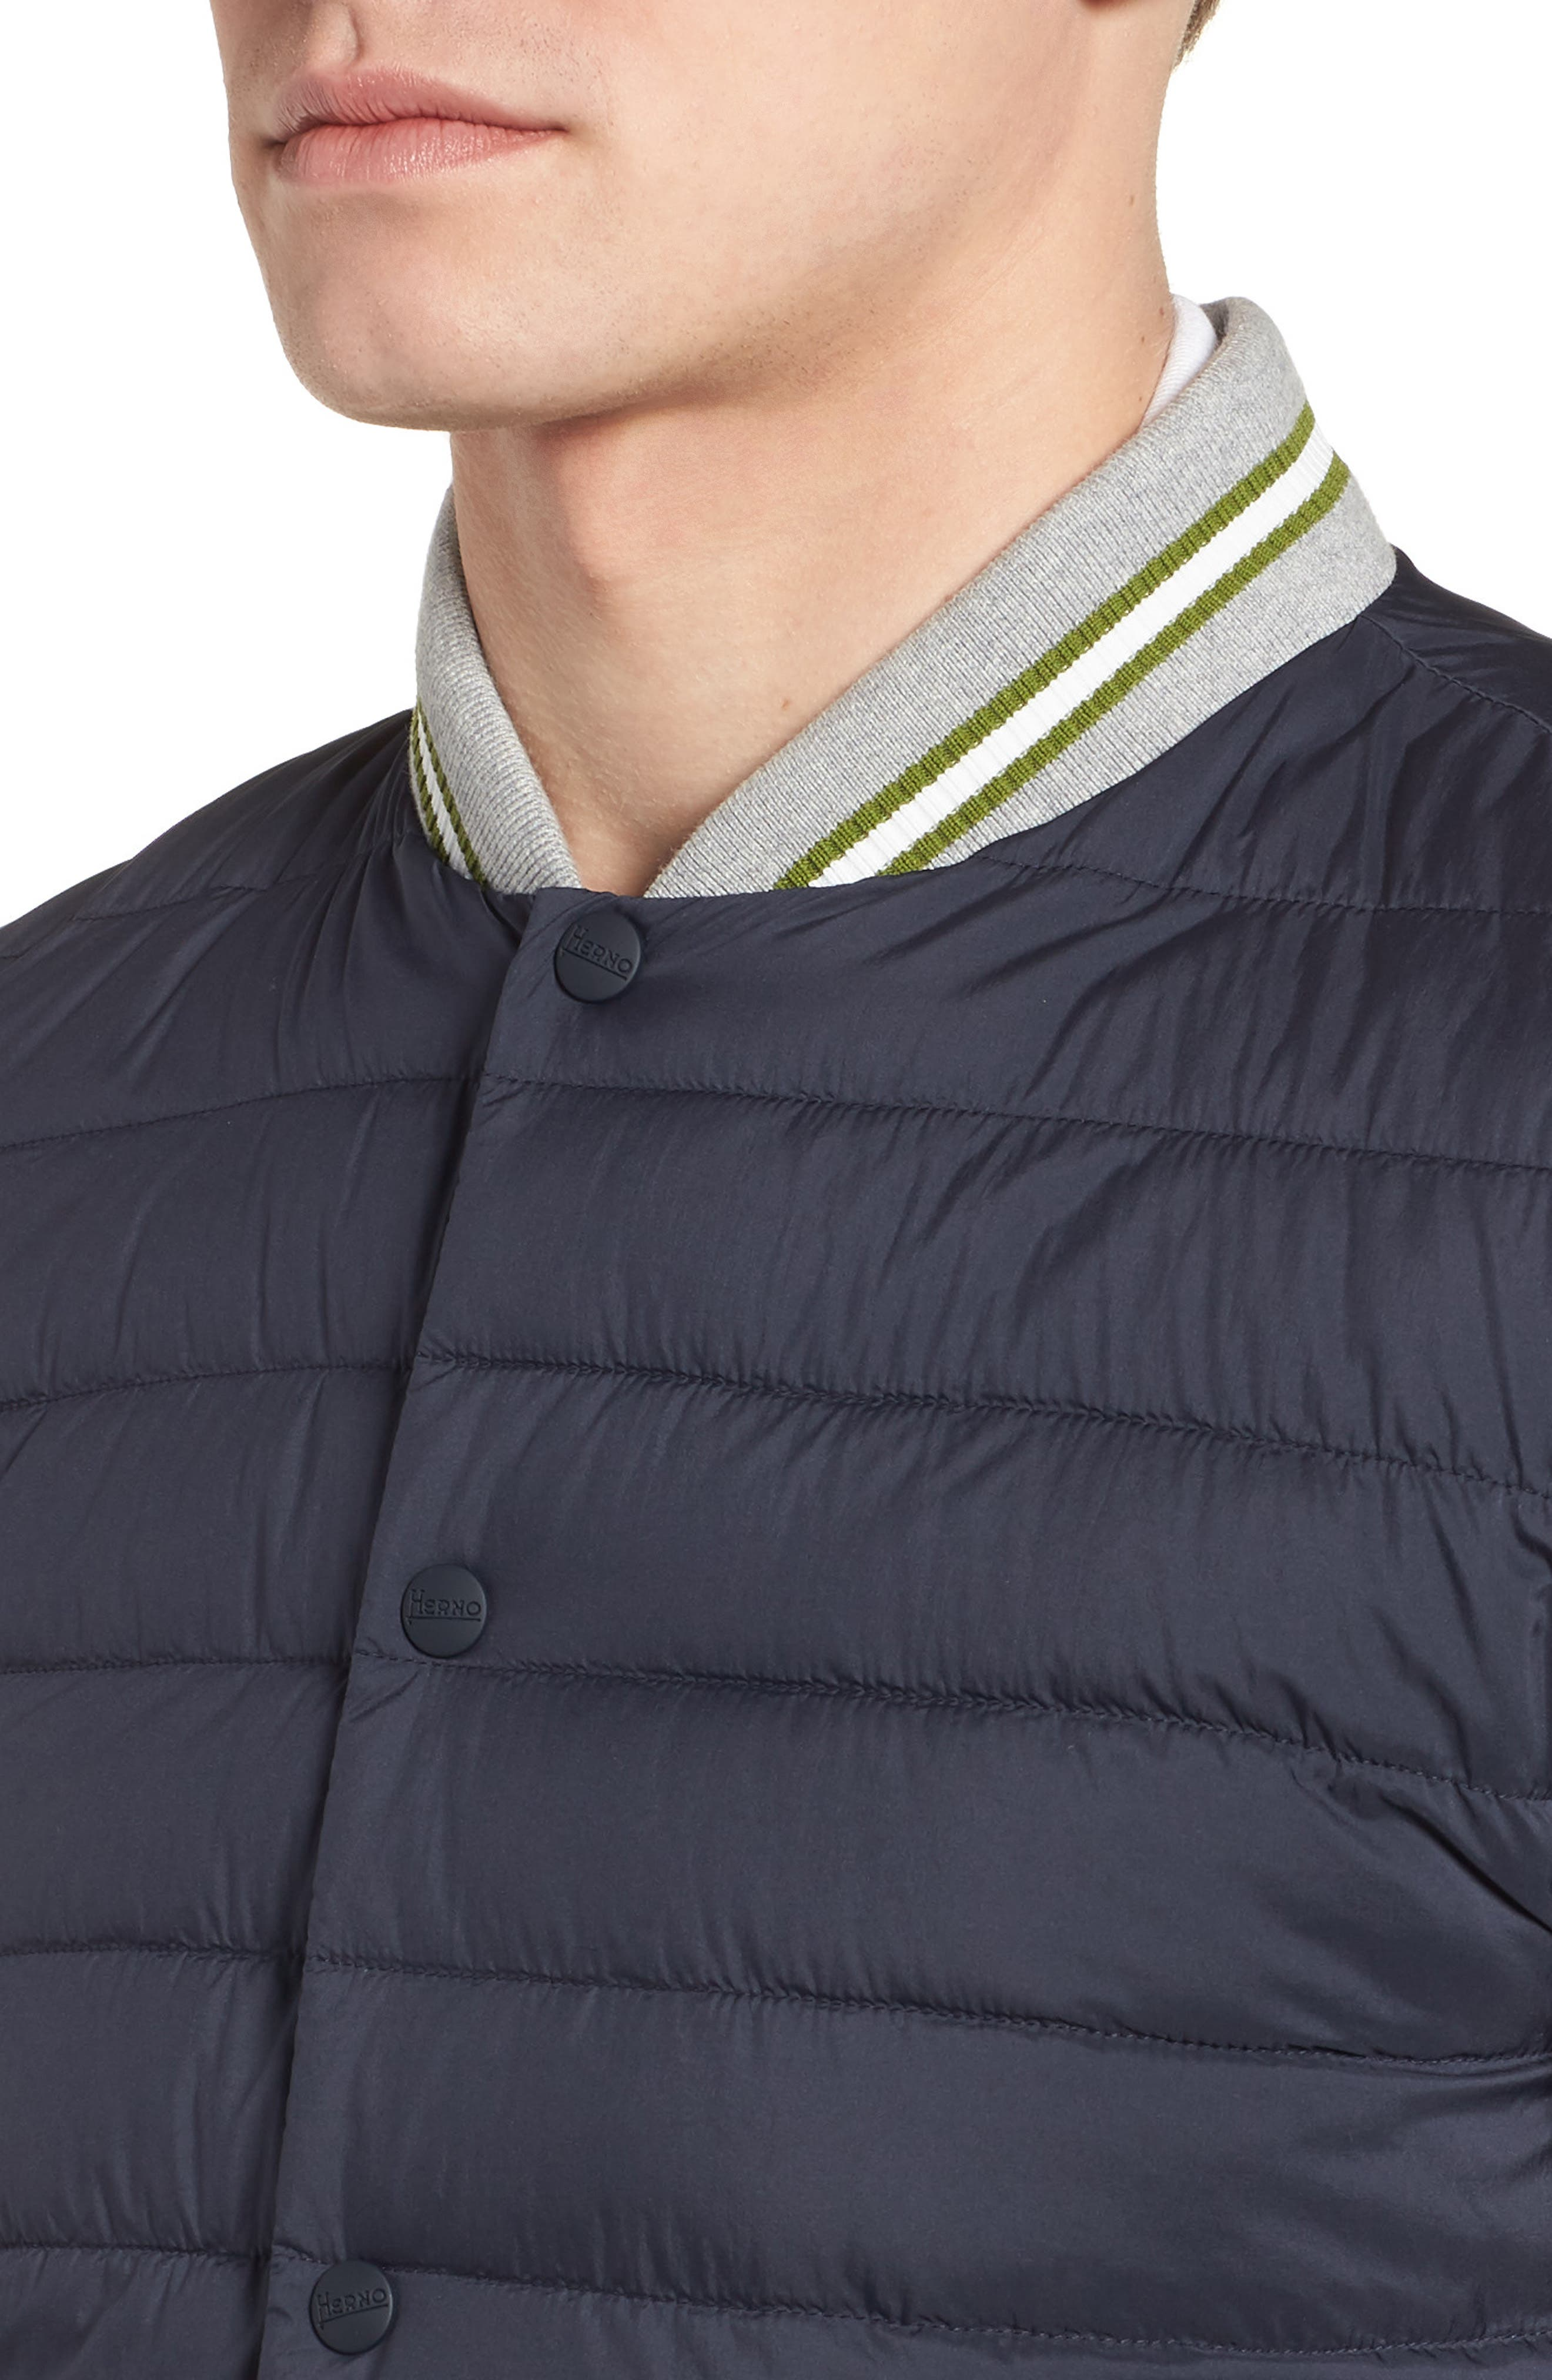 Quilted Baseball Jacket,                             Alternate thumbnail 4, color,                             400